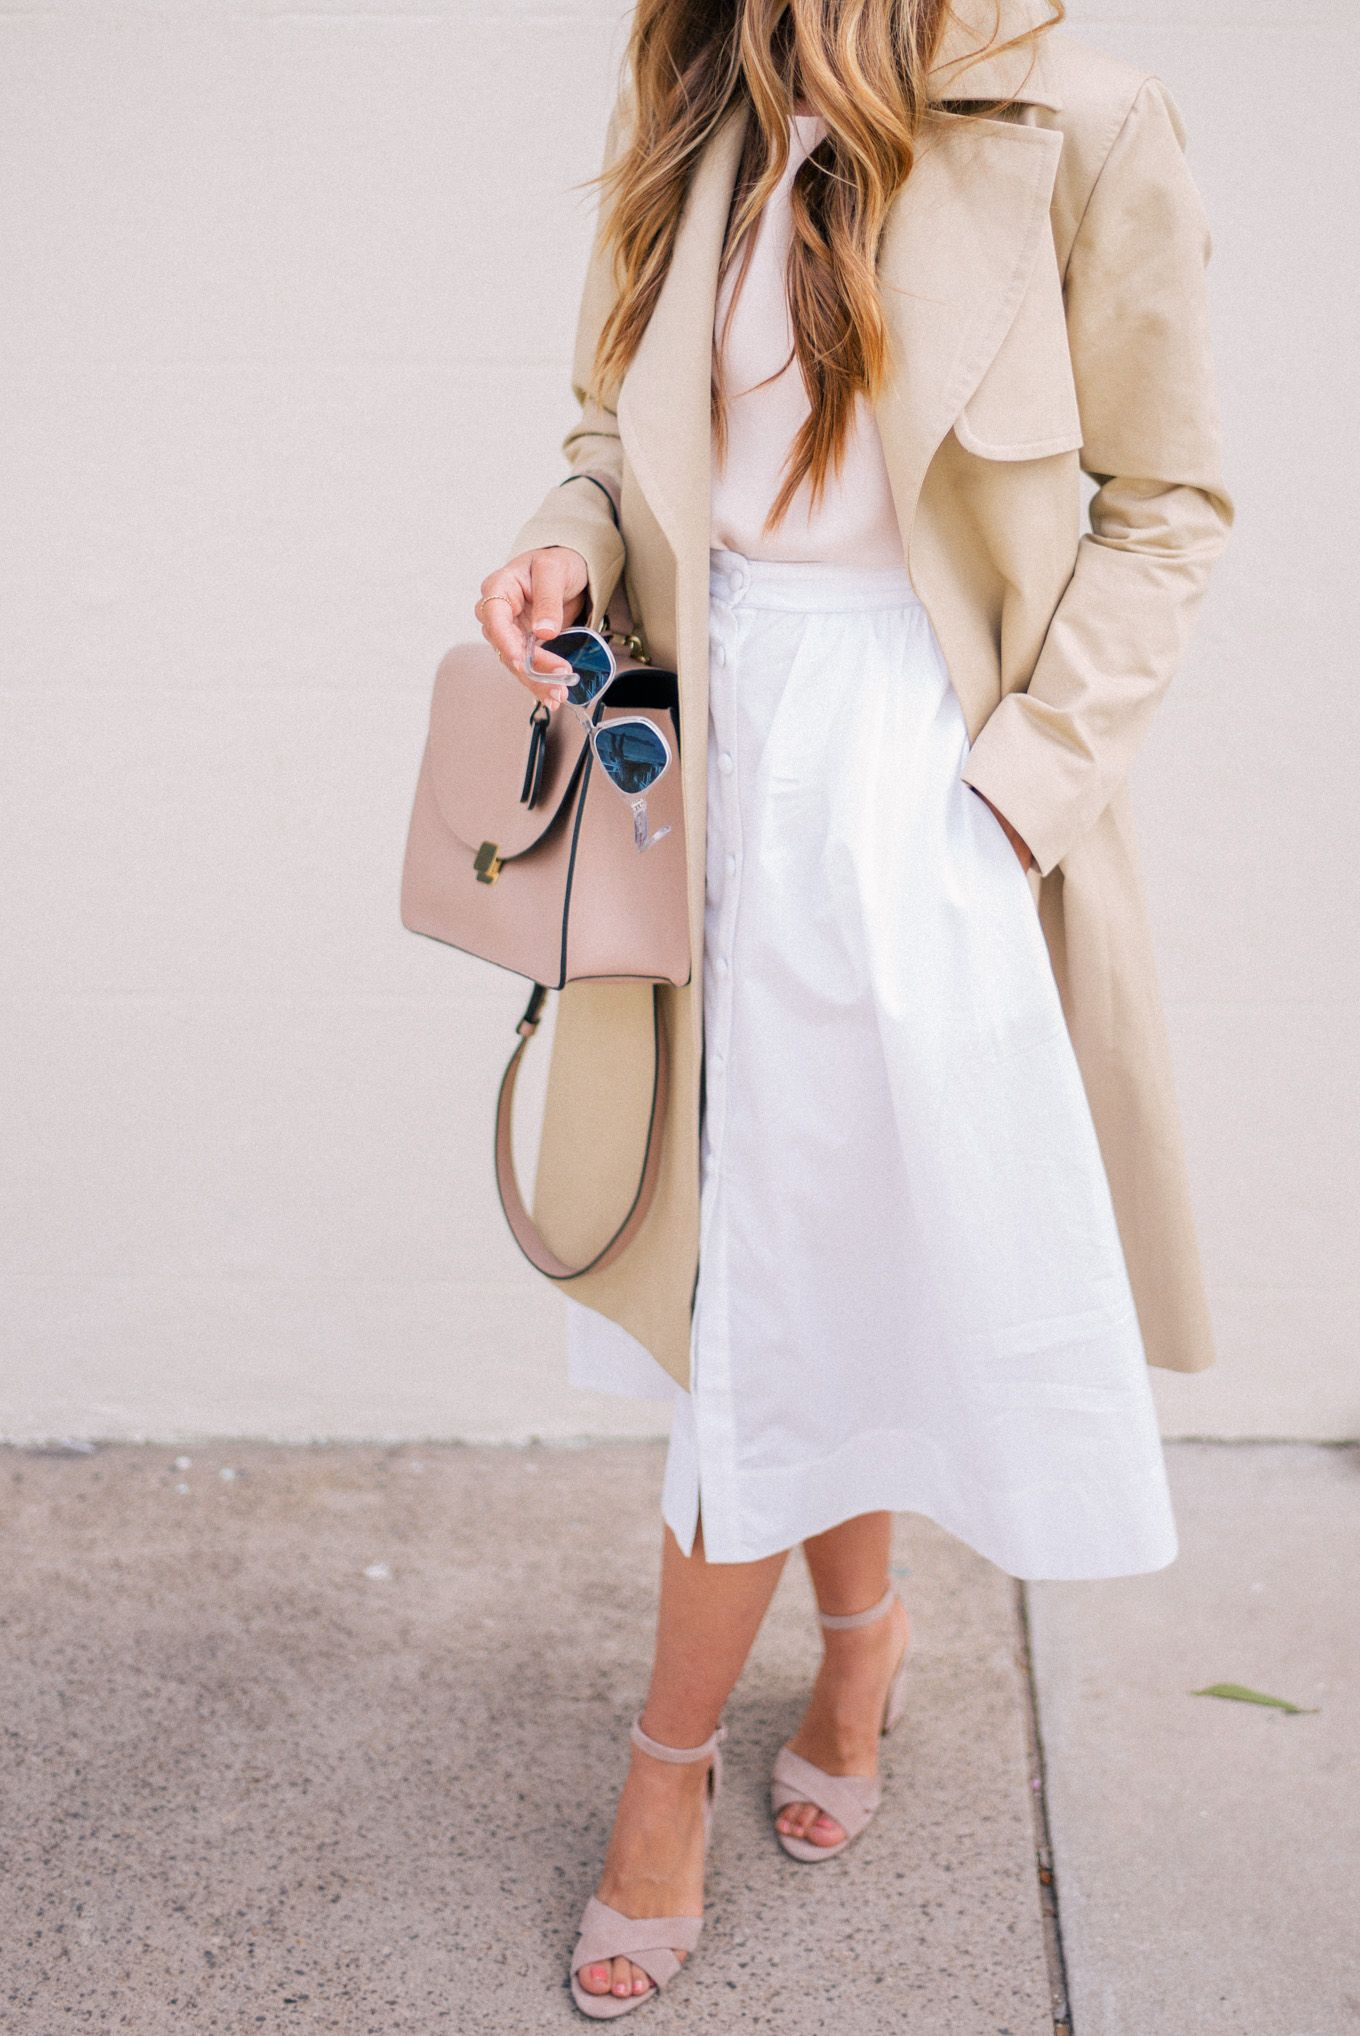 White skirt + trench coat.